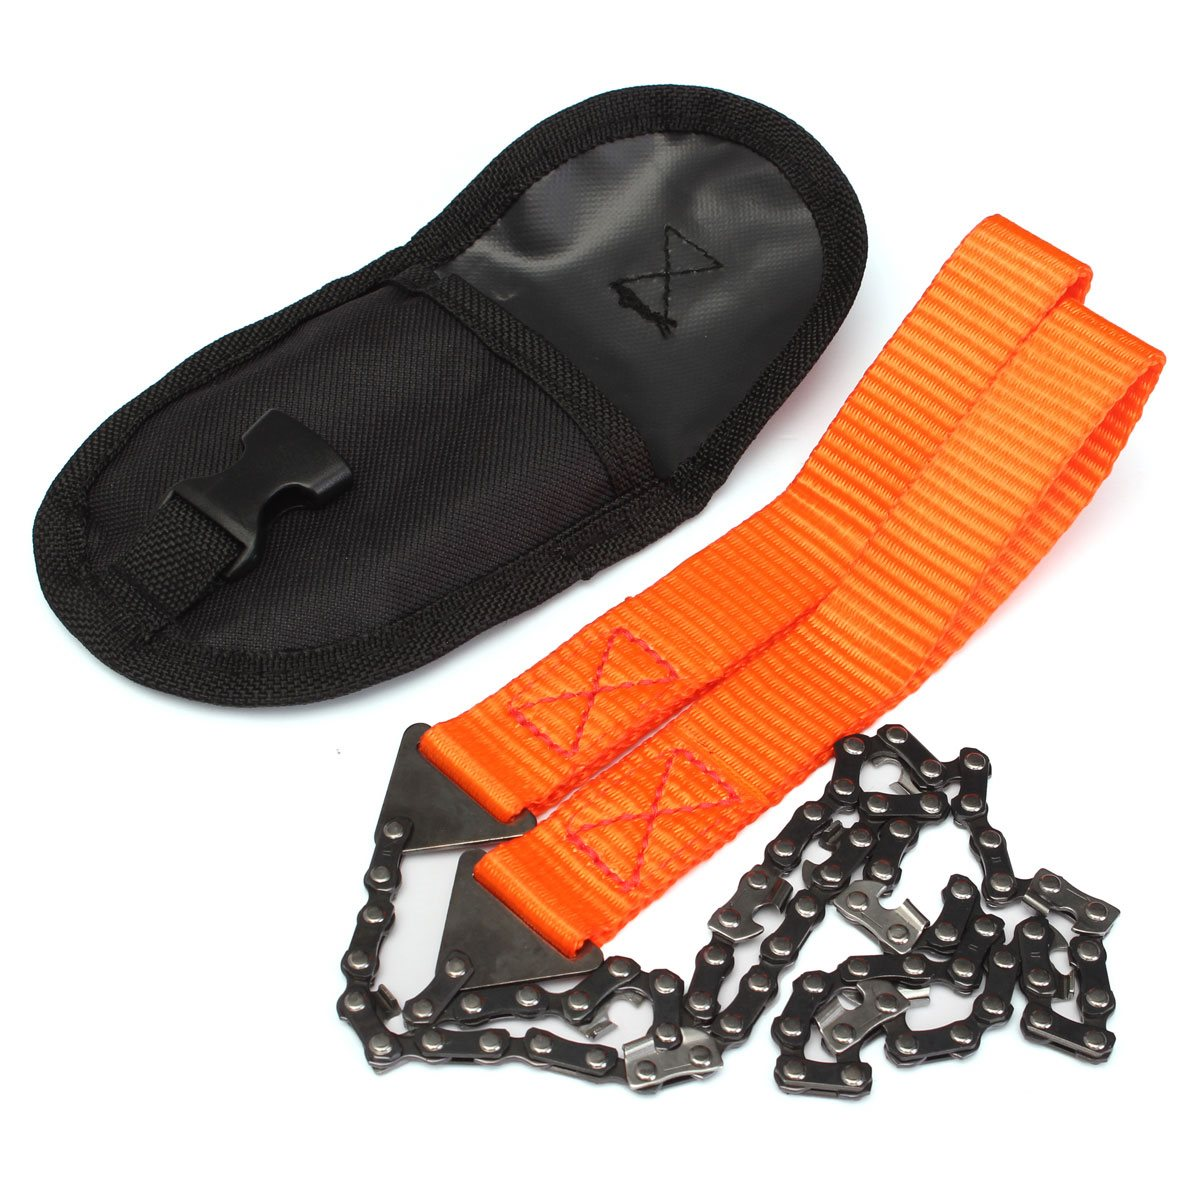 Multifunction Hand Chain Saw Camping Hiking Survival Emergency Tool With Pouch outdoor travel kits(China (Mainland))